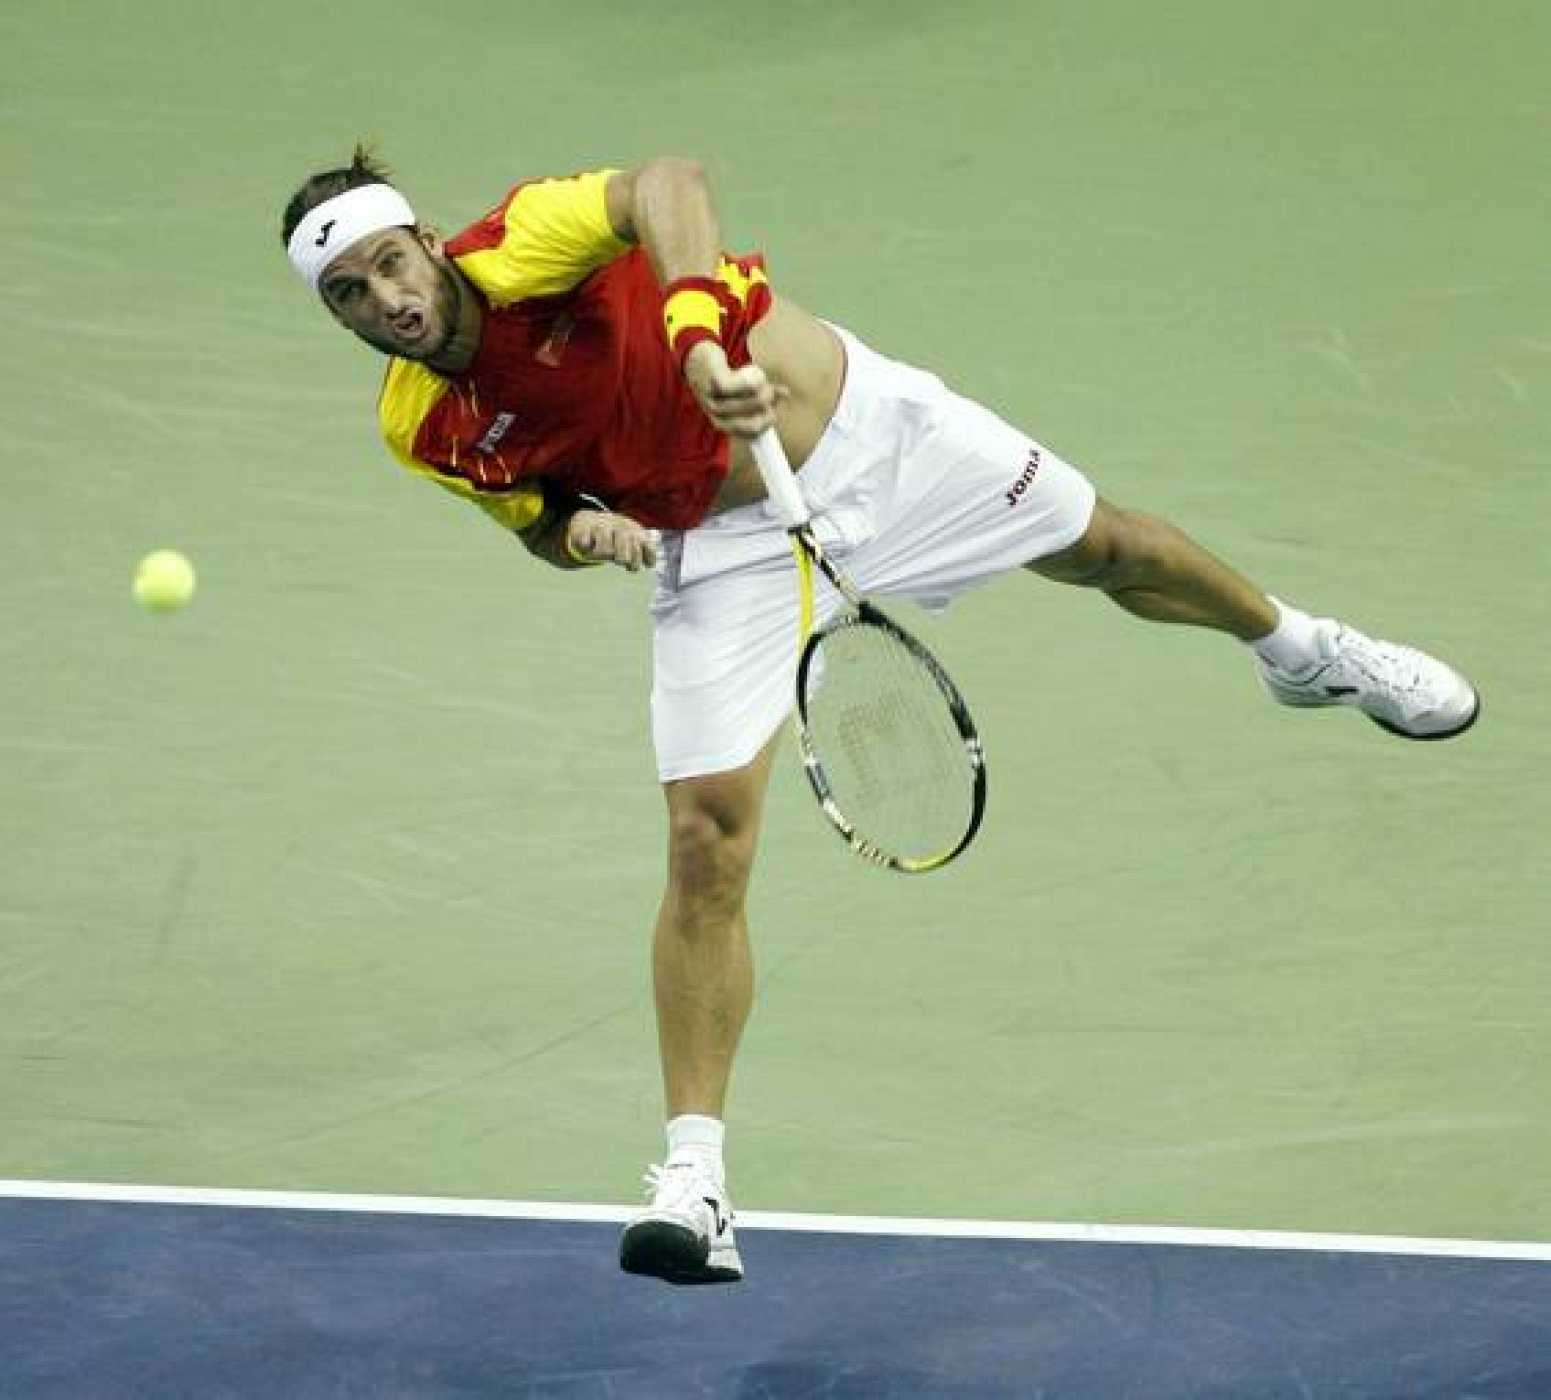 Lopez of Spain serves against Fish of the U.S. during their singles Davis Cup tennis match in Austin, Texas